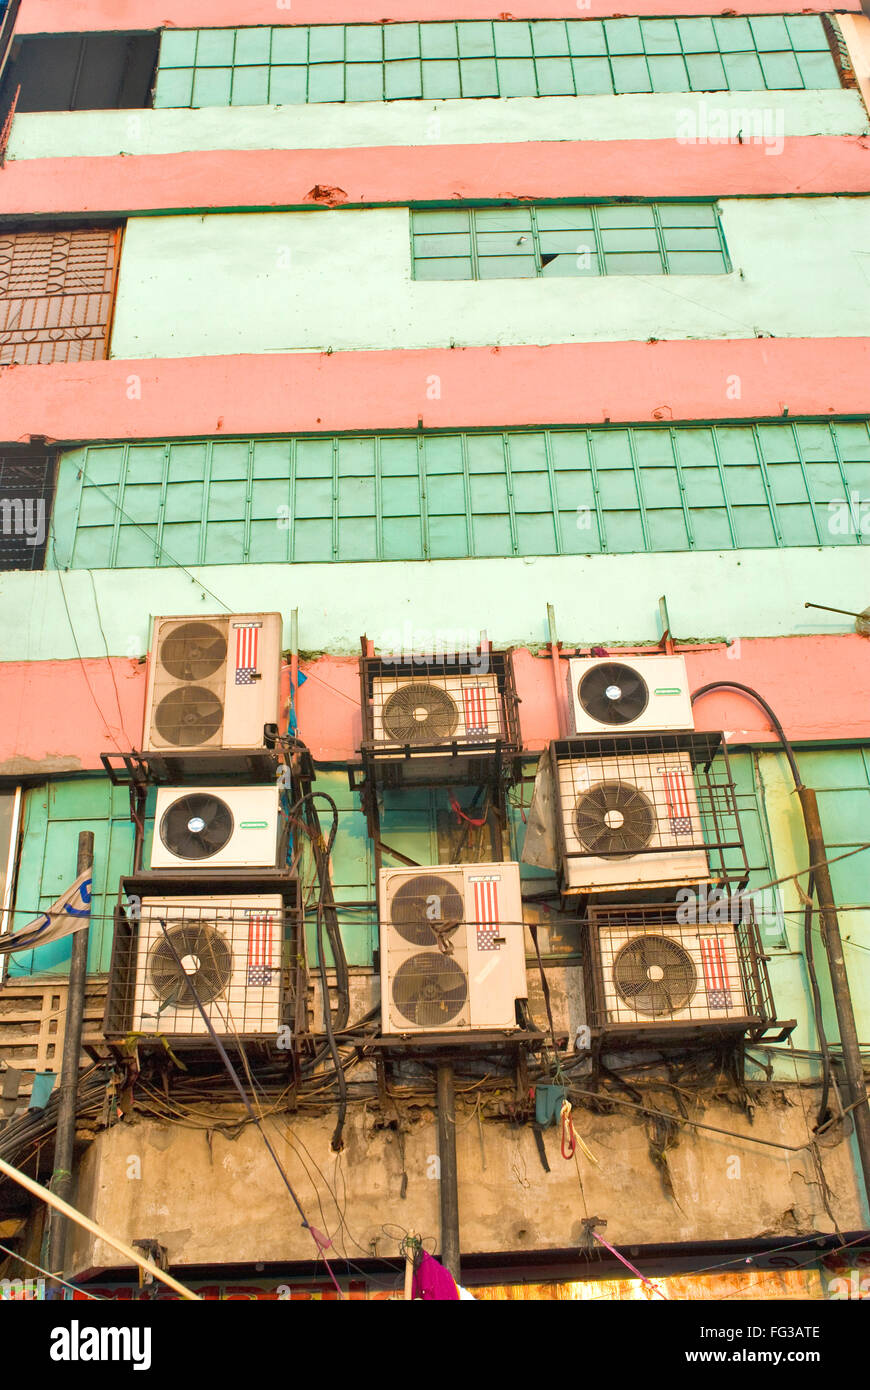 Badly wired air conditions ; New Market ; Dhaka ; Bangladesh - Stock Image